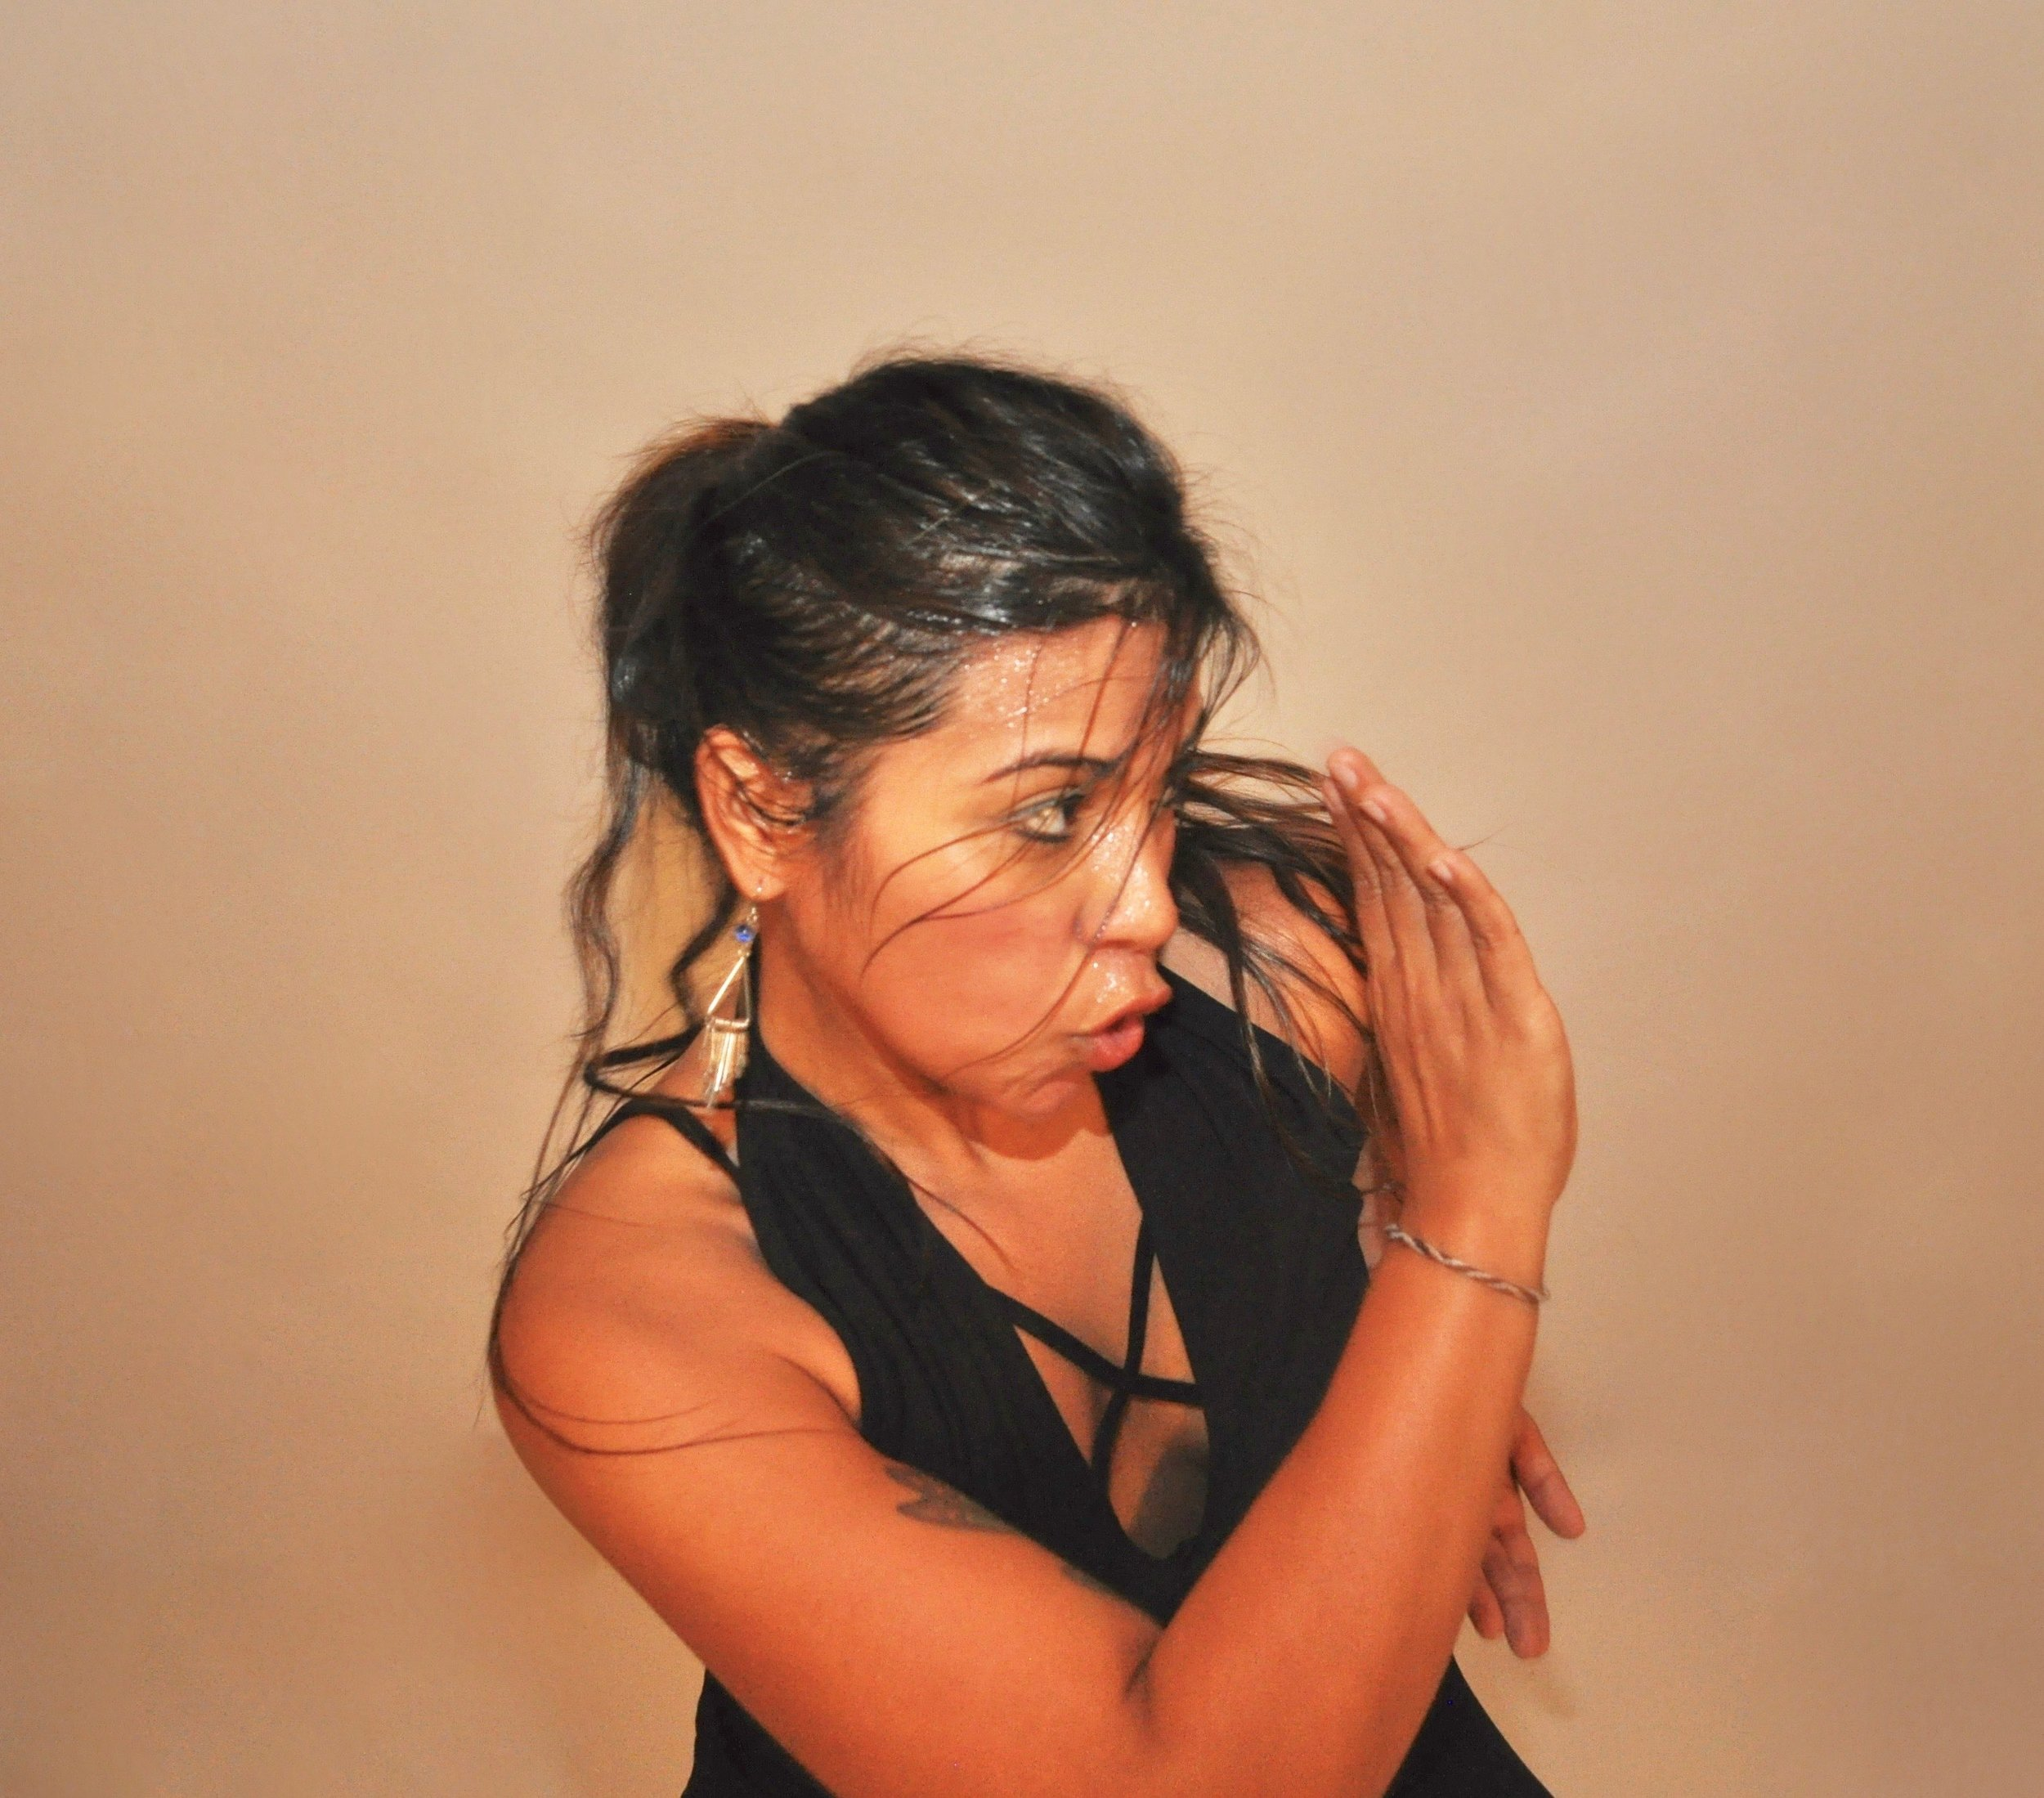 Nia Technique with Groove and Wellness- Valerie Sanchez Hawaii (Nia MoveIT).jpg